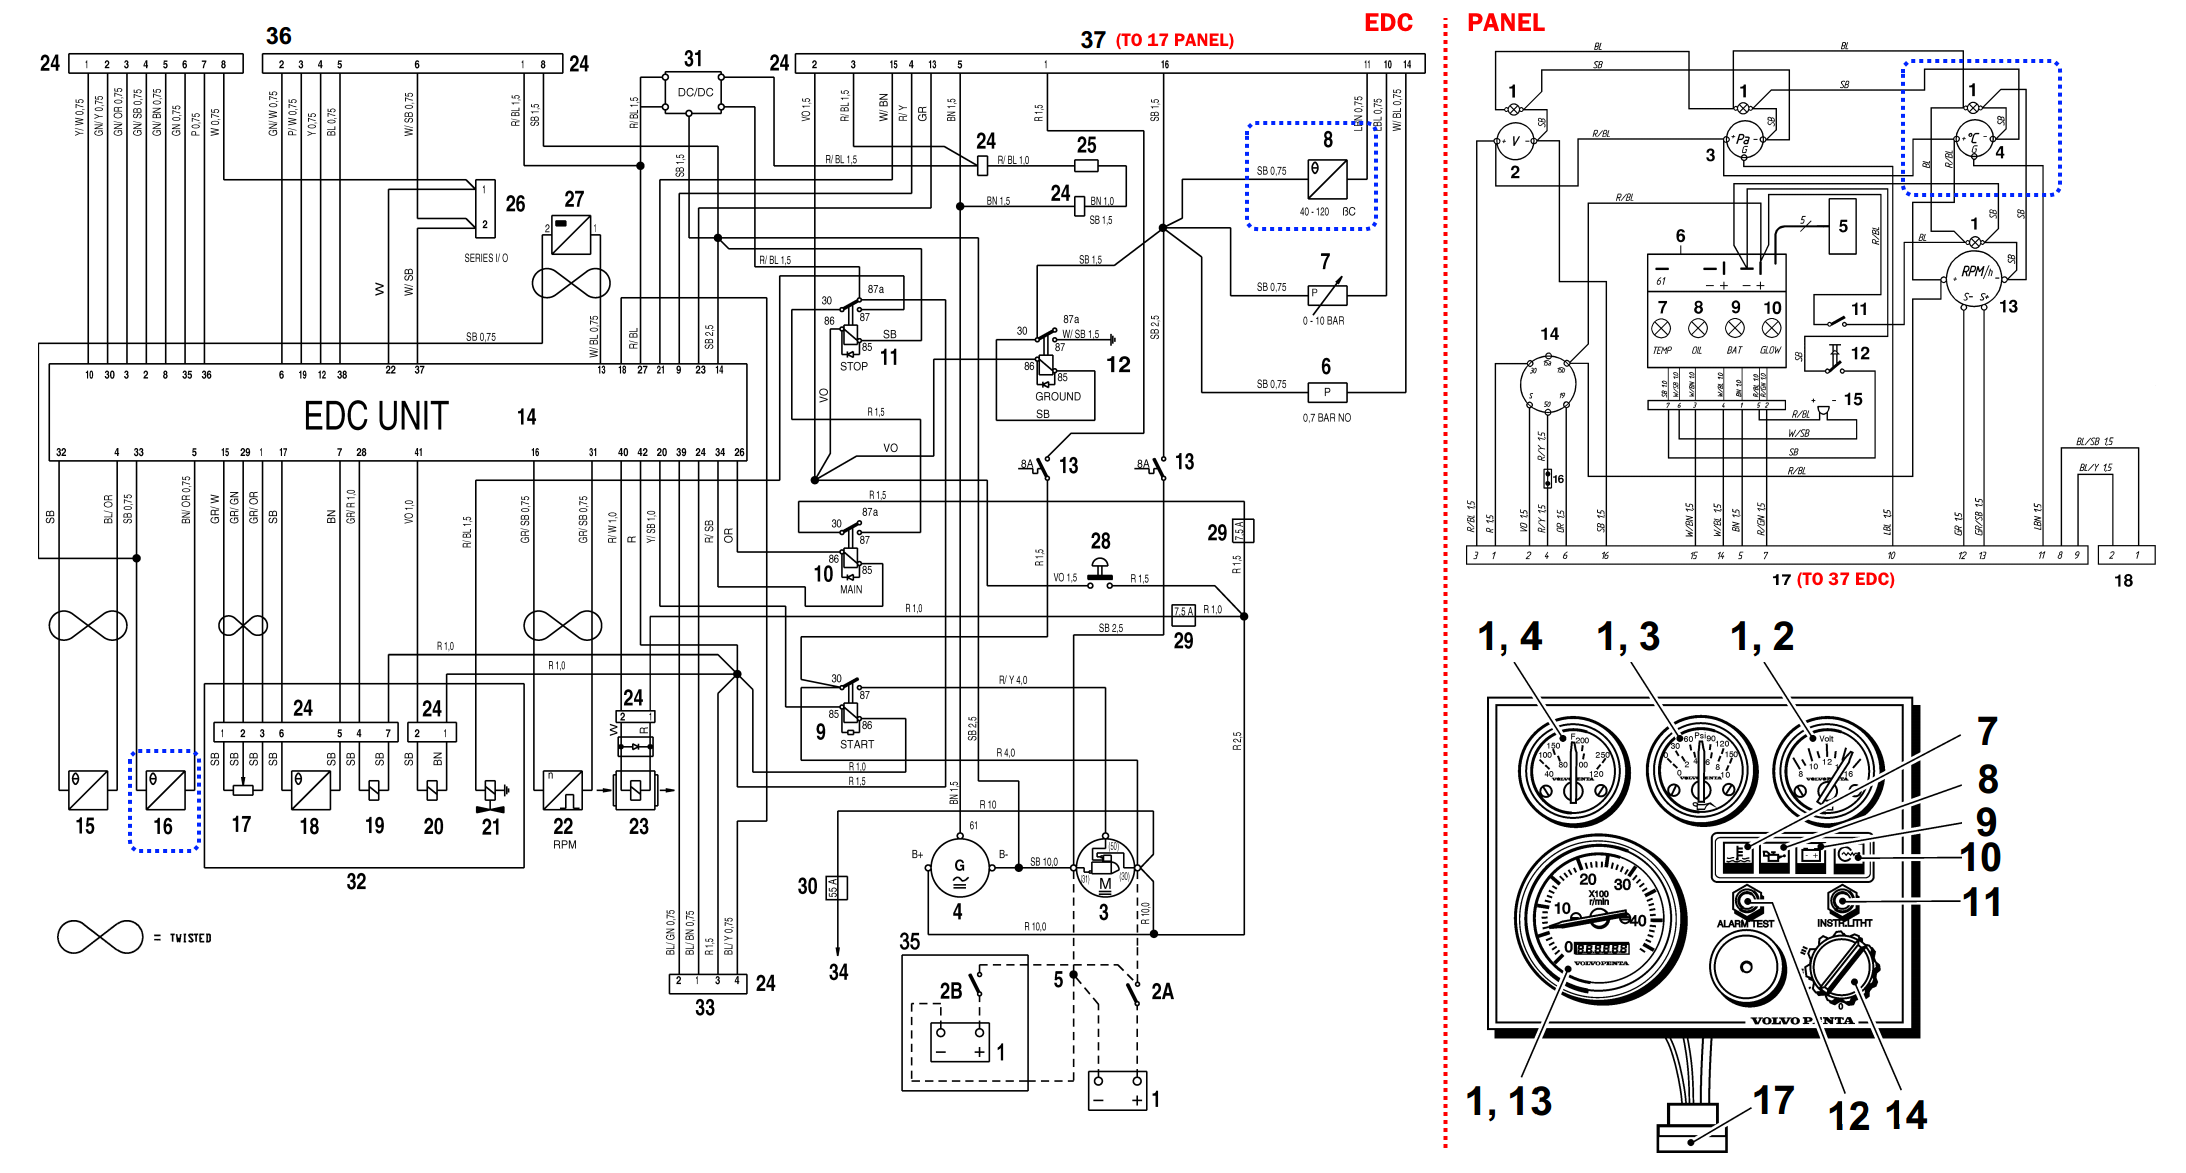 Volvo Penta Wiring Diagram from www.yachtd.com